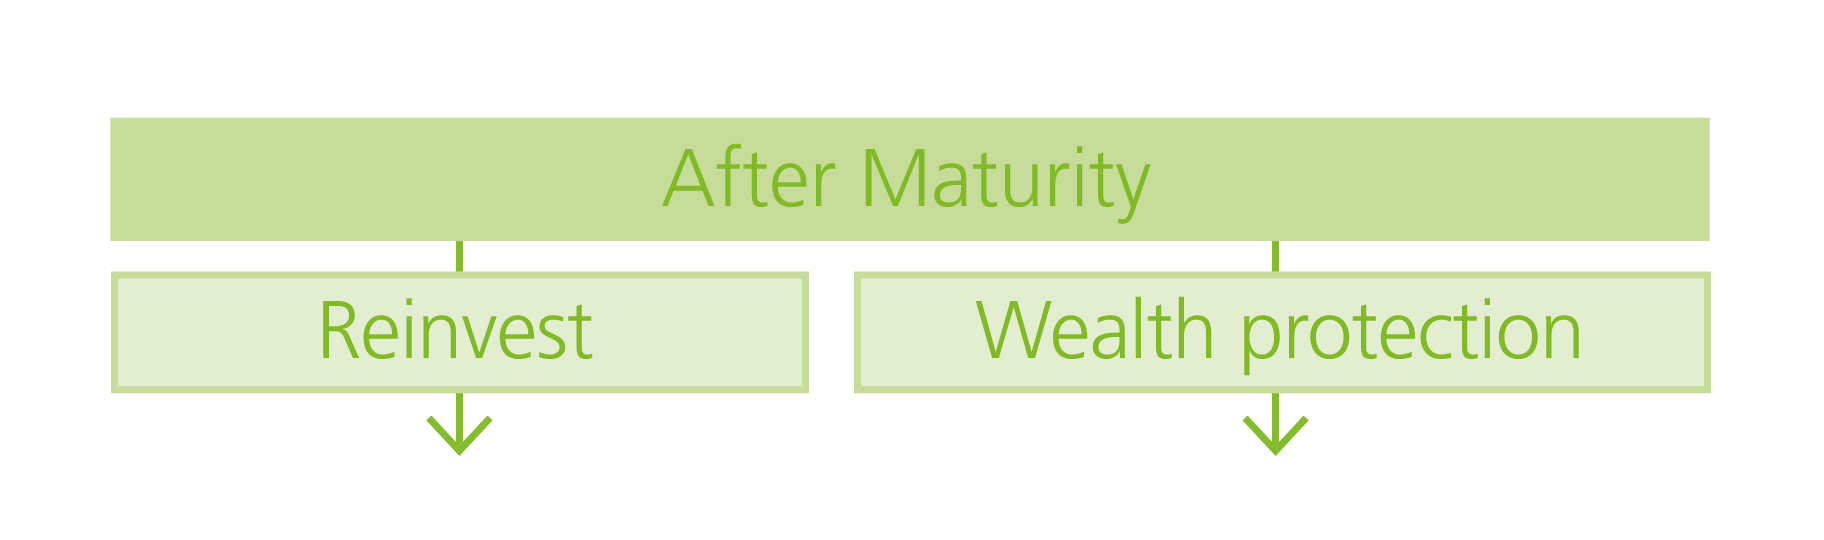 After-Maturity-graphic_White-background-(2).png